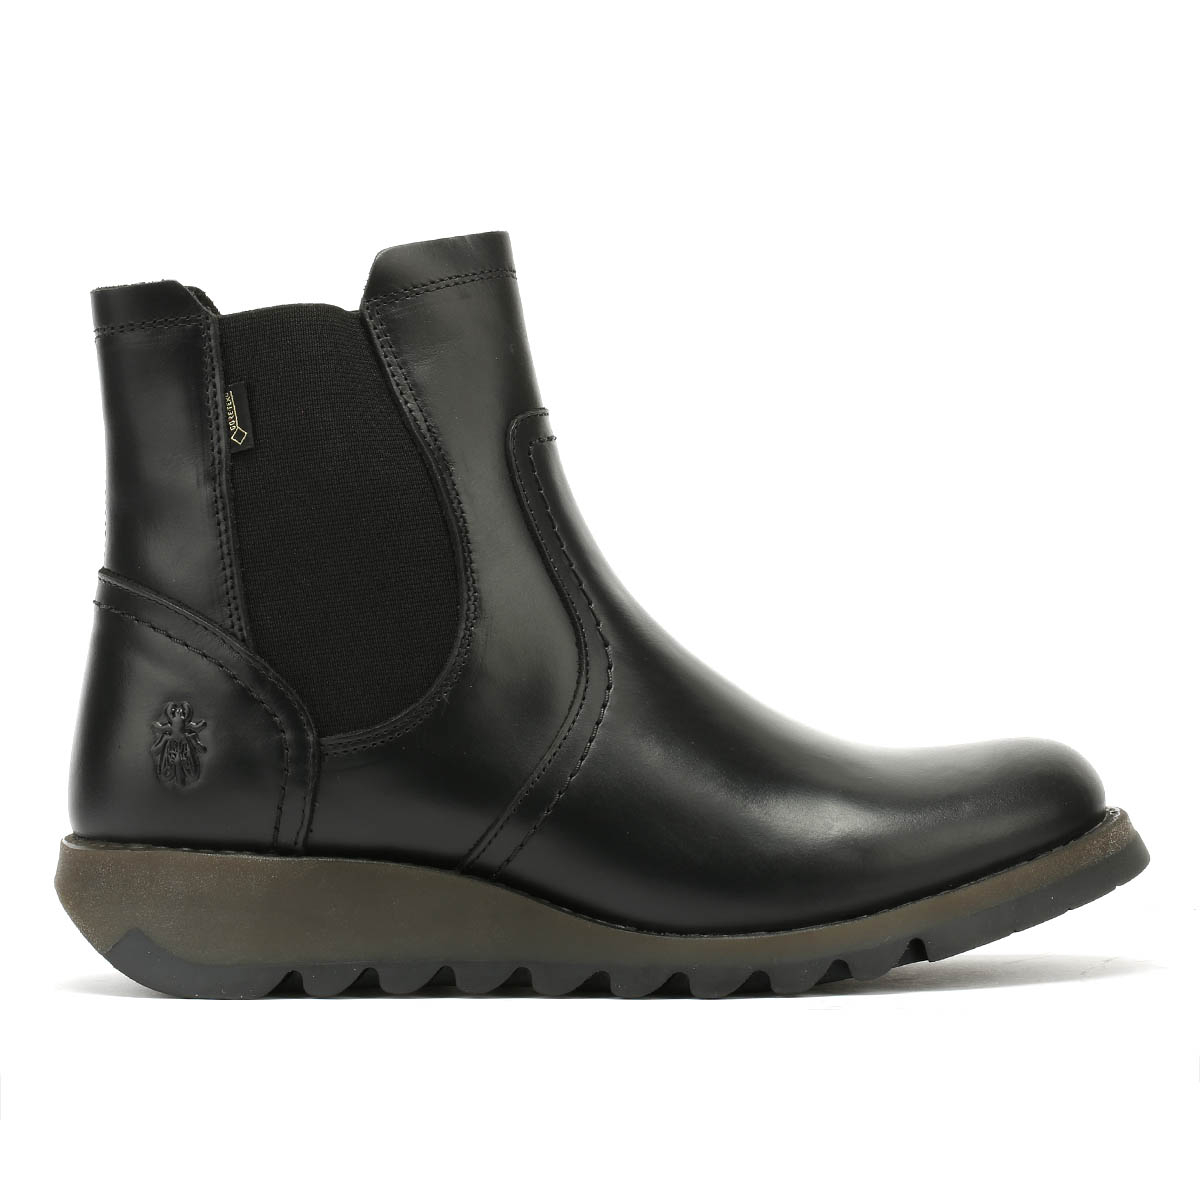 Fly-London-Womens-Boots-Black-Scon-Rug-Ladies-Leather-Winter-Ankle-Shoes thumbnail 19